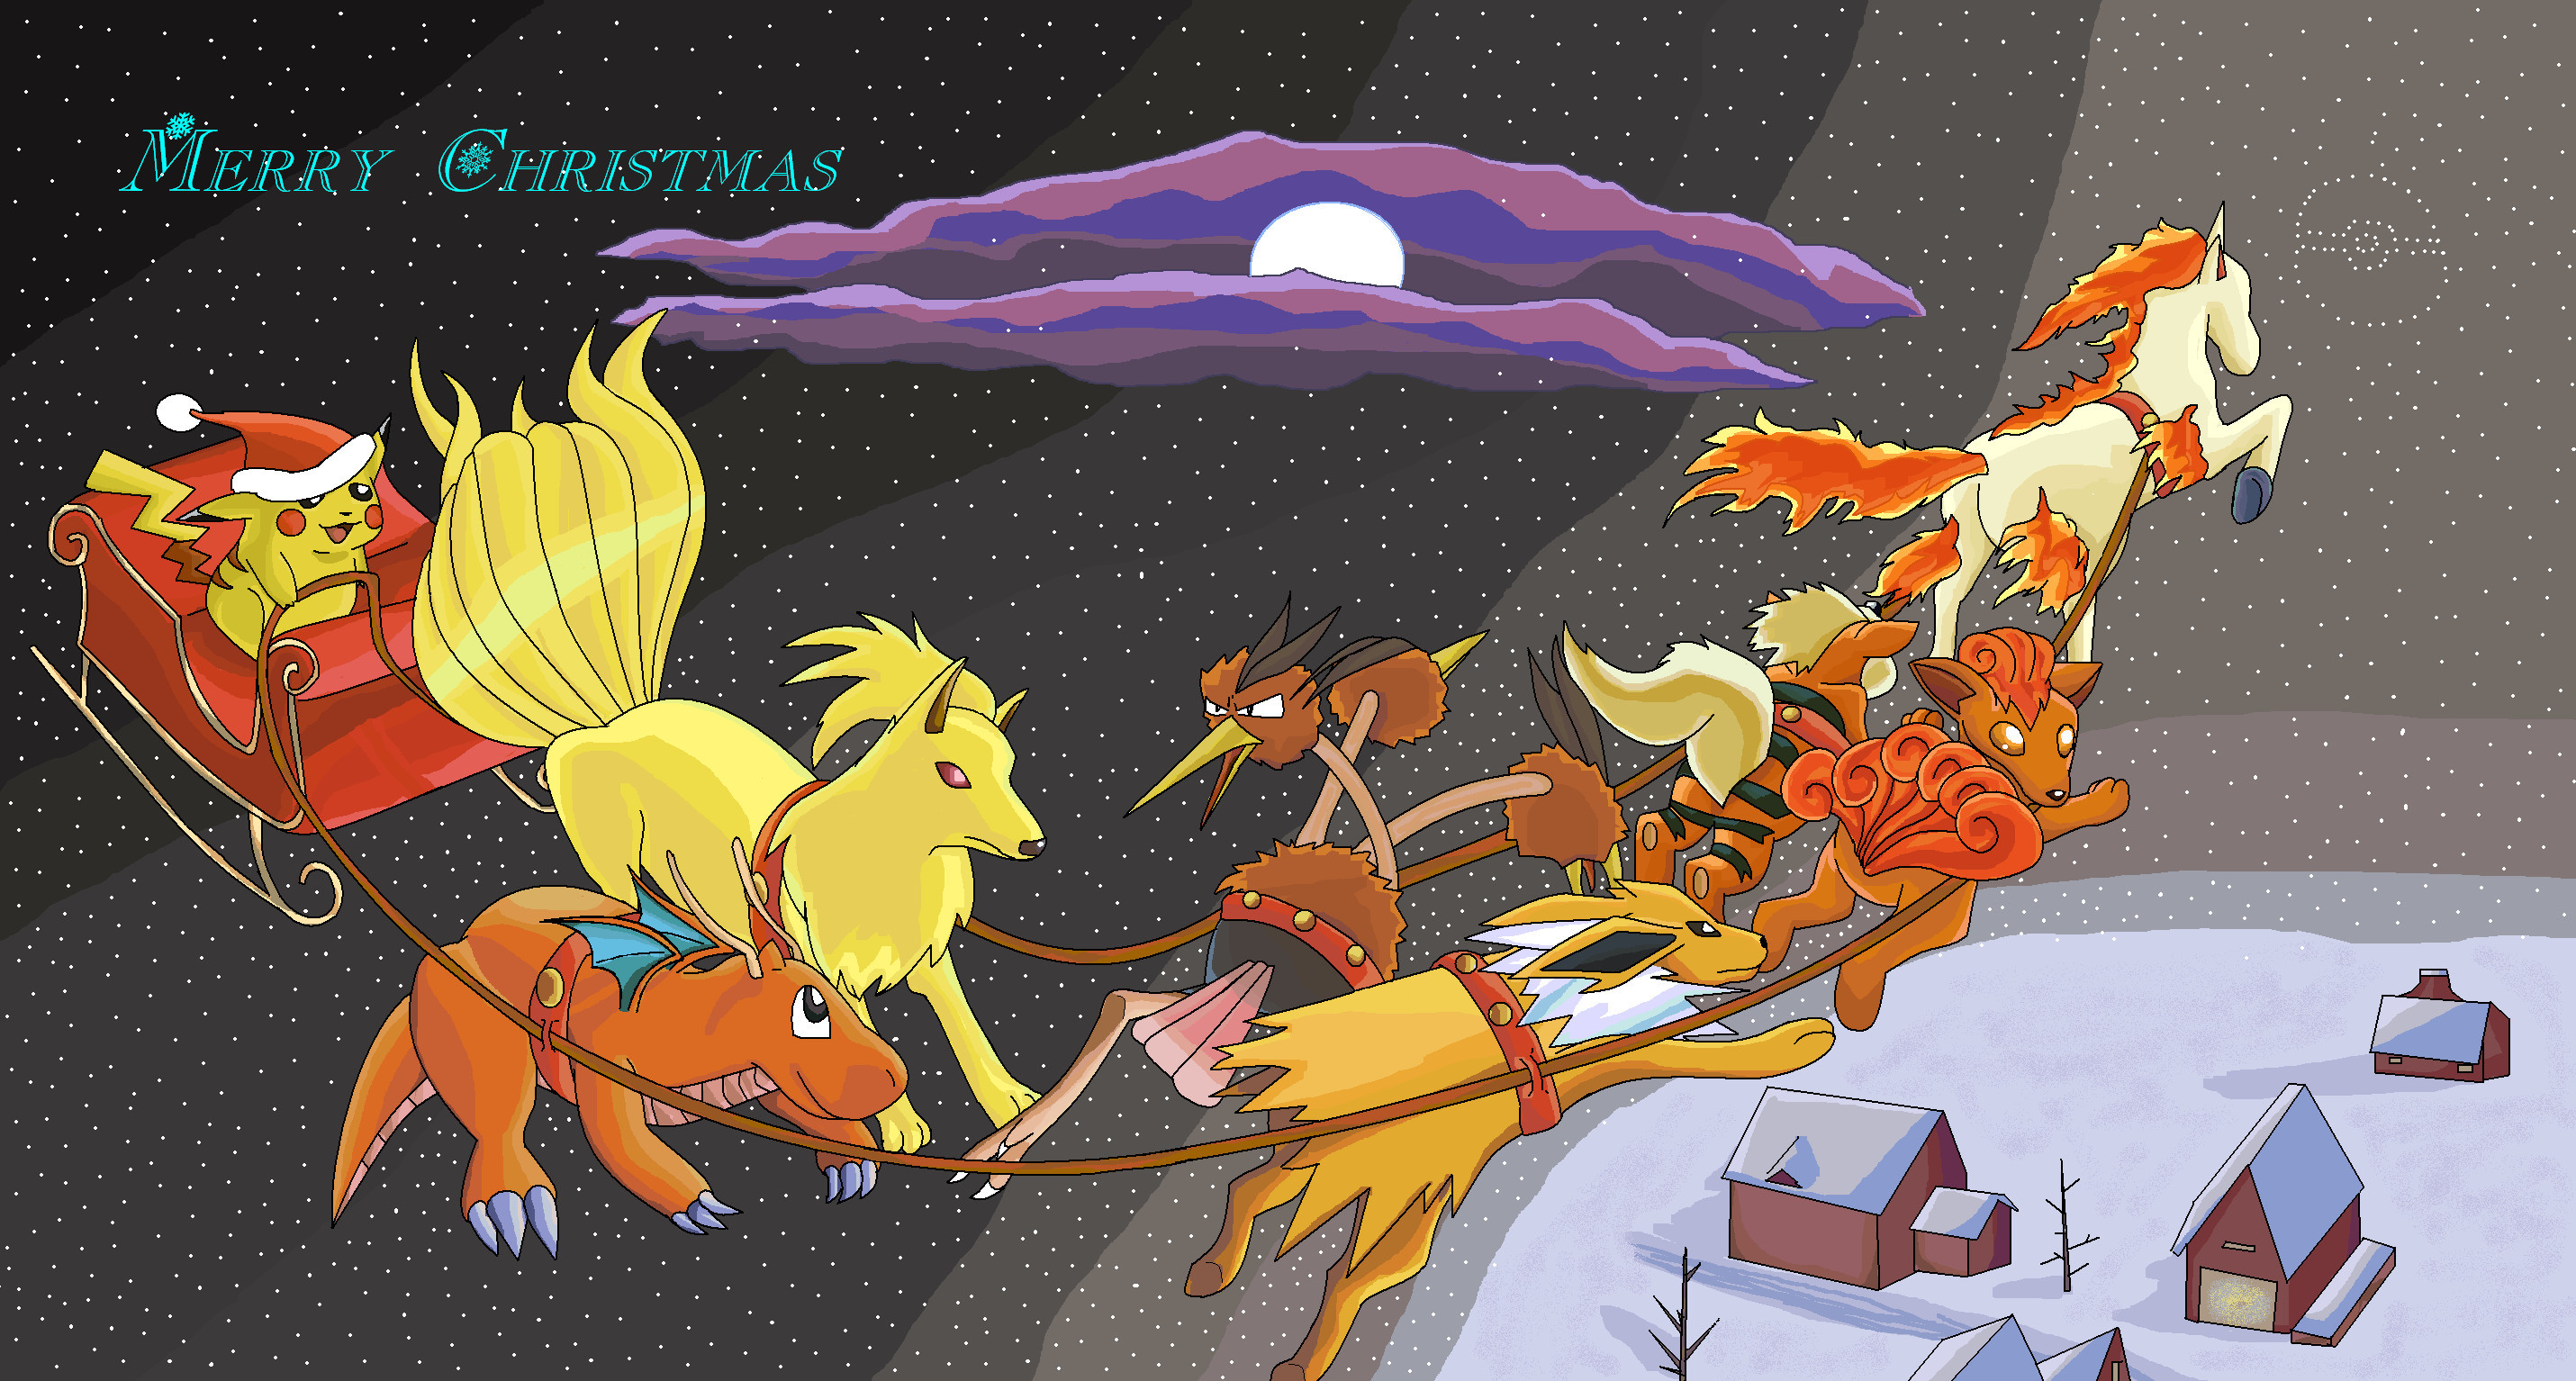 2861x1534 Pokemon Christmas 2000! by SalamencePaint Pokemon Christmas 2000! by  SalamencePaint